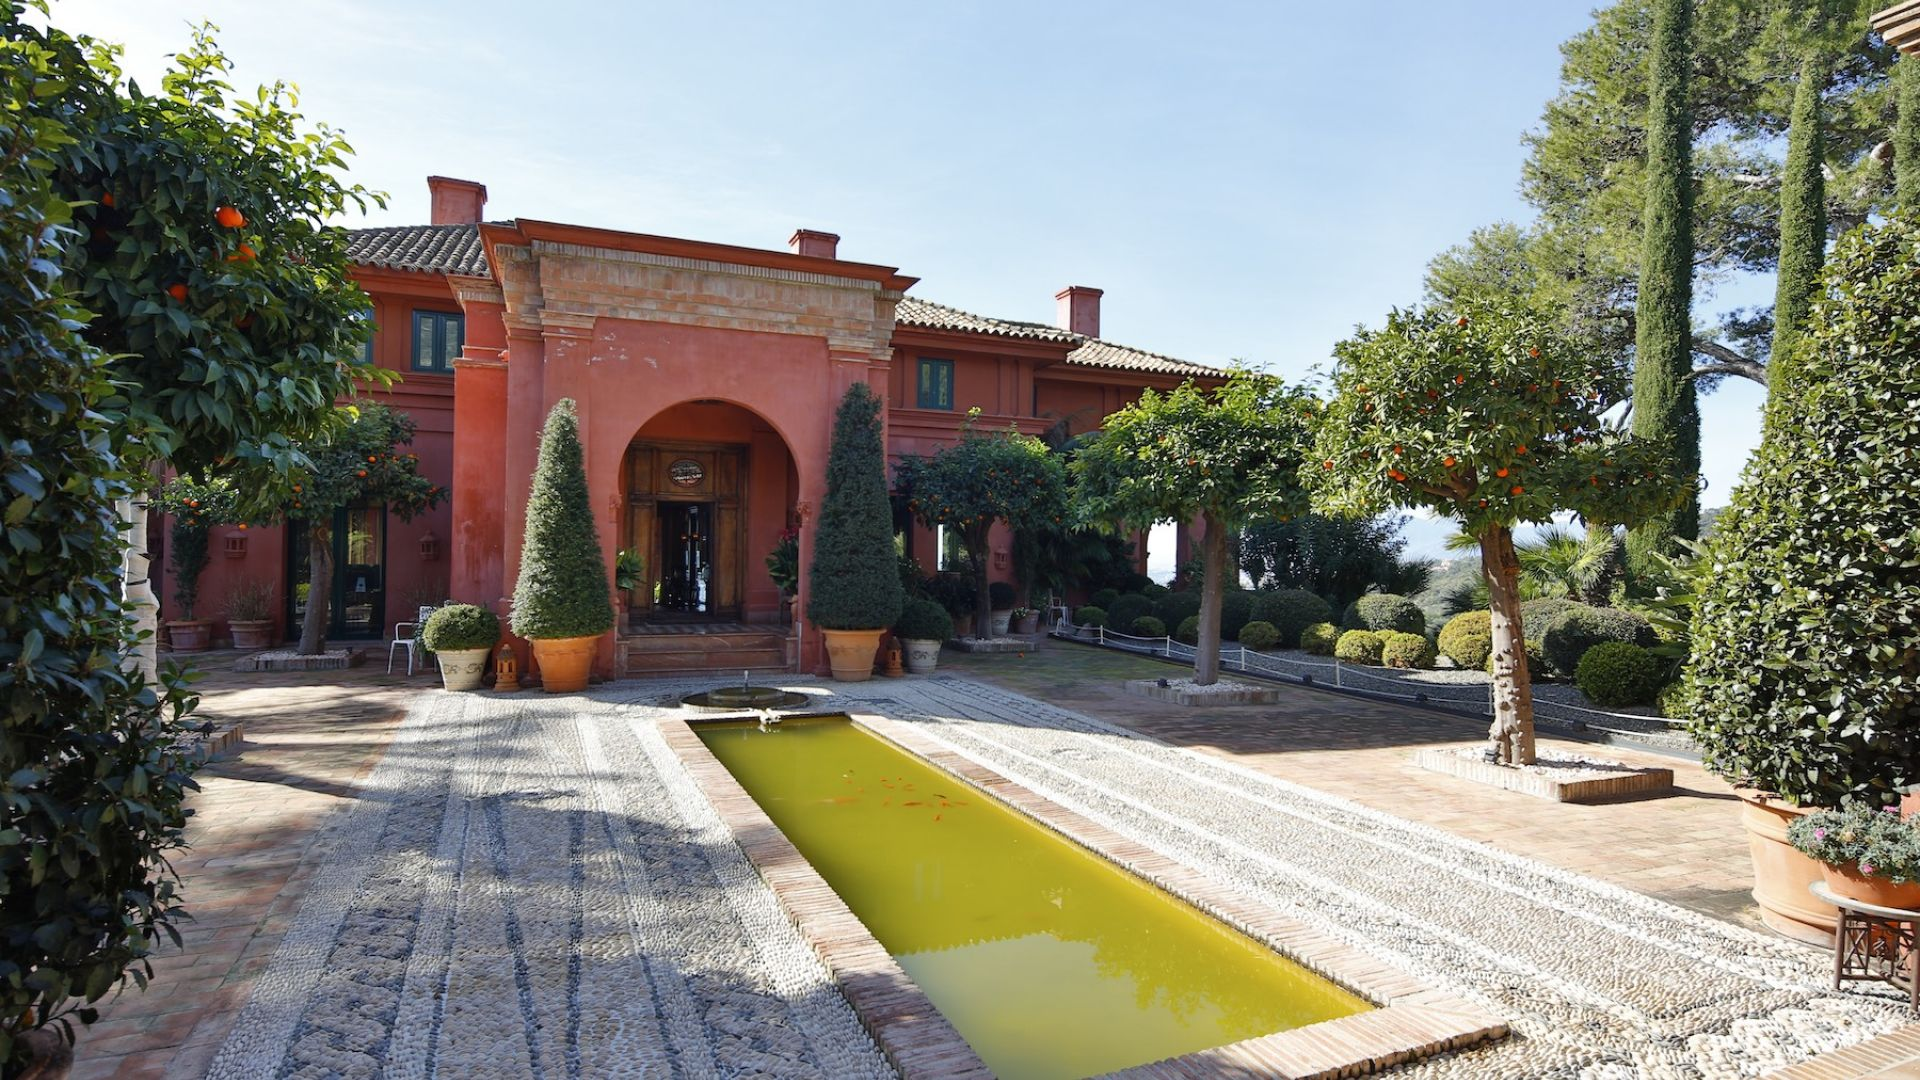 Moradia para Venda às Magnificent residence located in the hills above Marbella Marbella, Costa Del Sol, 29600 Espanha